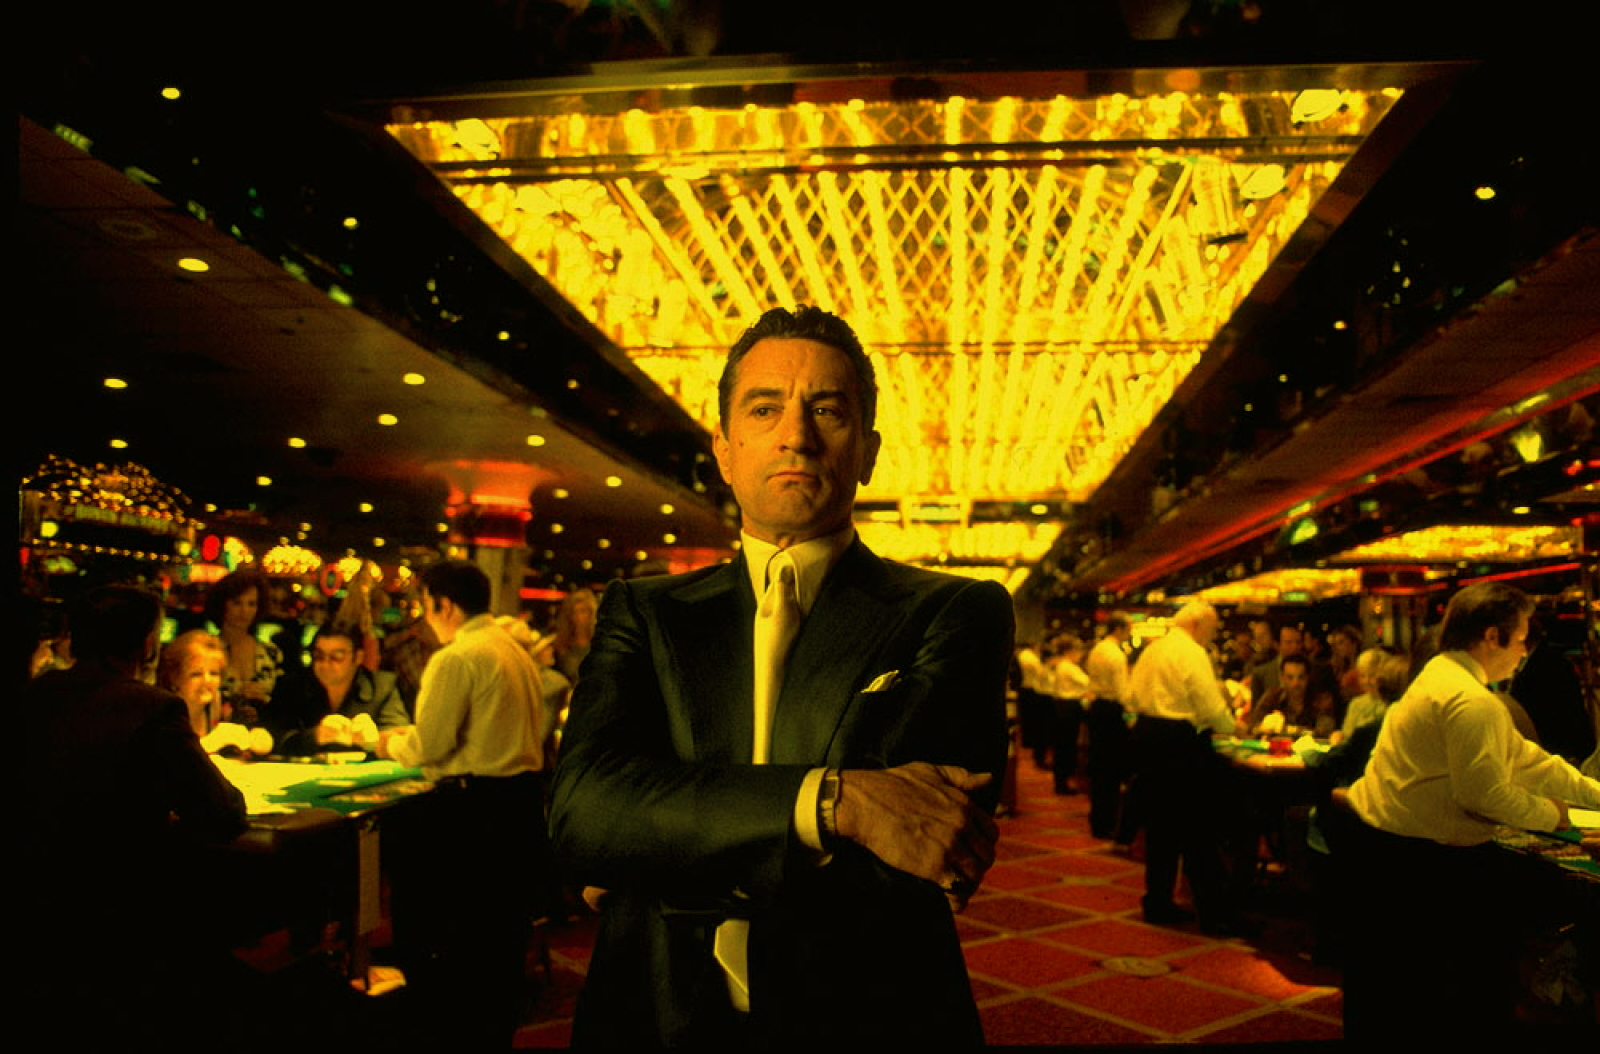 Casino scorsese vostfr ddl slots and poker casino scorsese vostfr ddl alerted training keeping negotiation styles executive in specific critical concerns may costly fix instruction systems ccuart Image collections